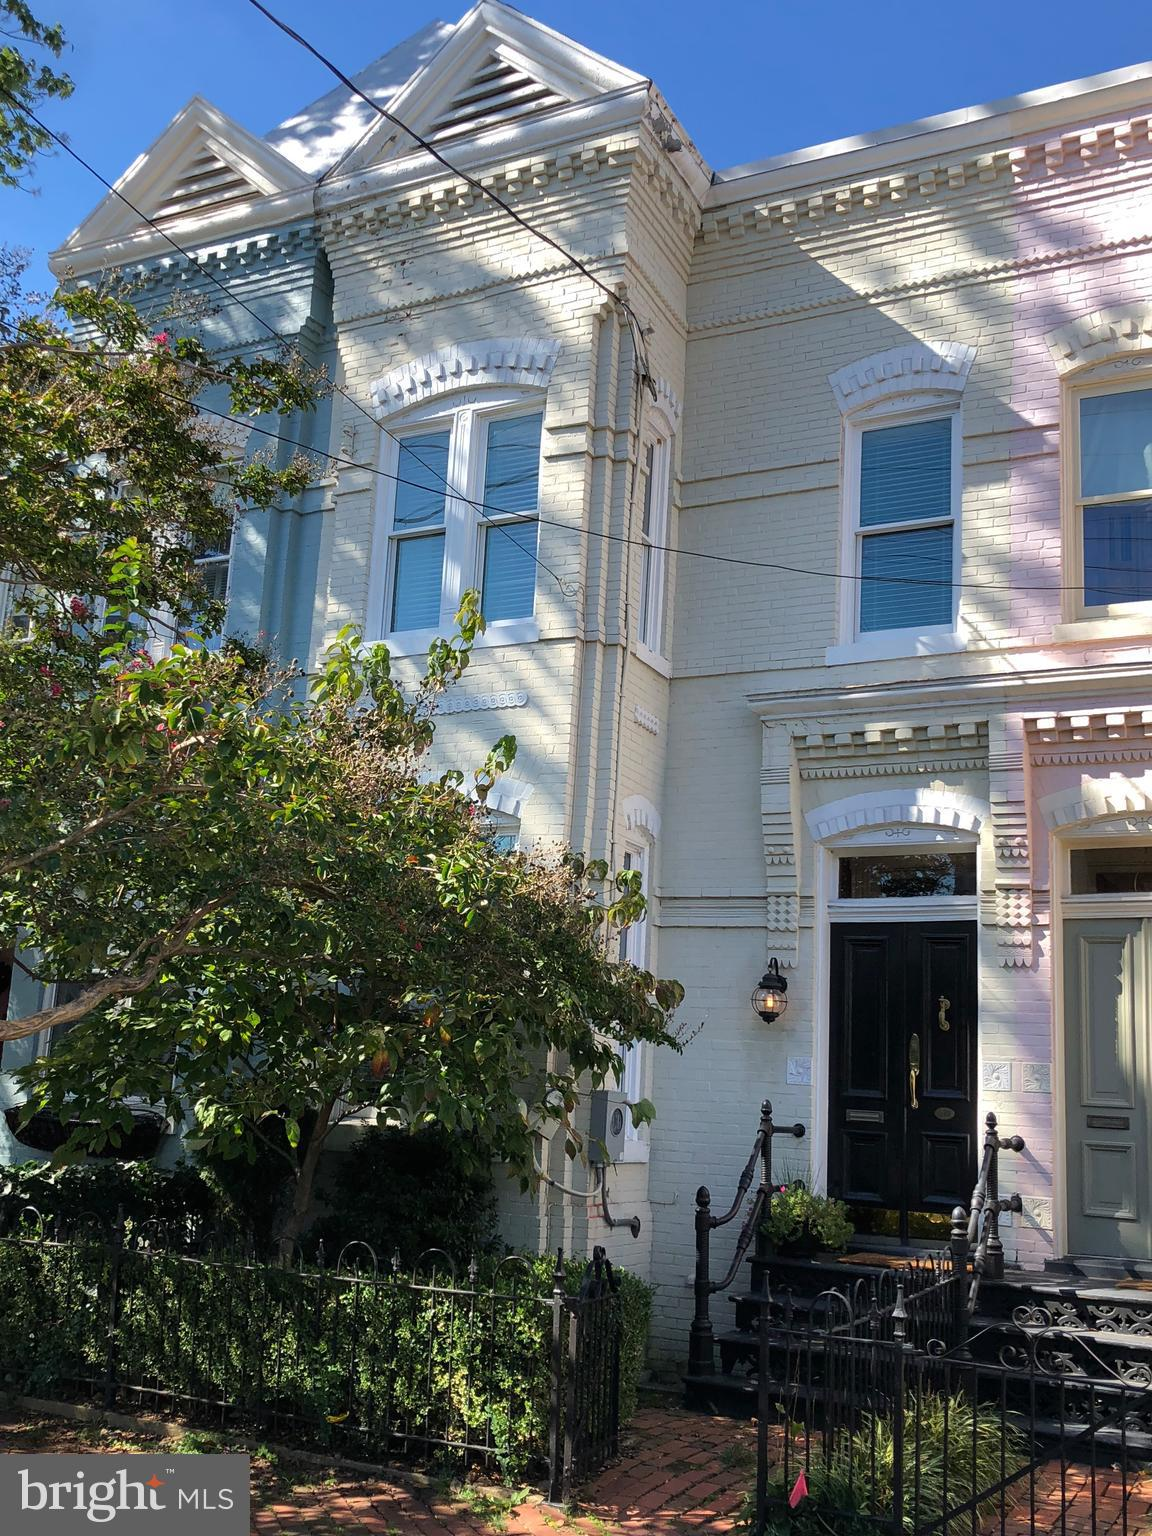 """One of the """"Four Painted Ladies"""" in the heart of Old Town just 2 blks off King St. and a few blks to the waterfront. Updated kitchen, beautiful wood floors, high ceilings, exterior brick patio and separate outside access to finished lower level. Seller is SIRVA Relocation LLC. call before writing.subject to RELO docs. Great opportunity!"""